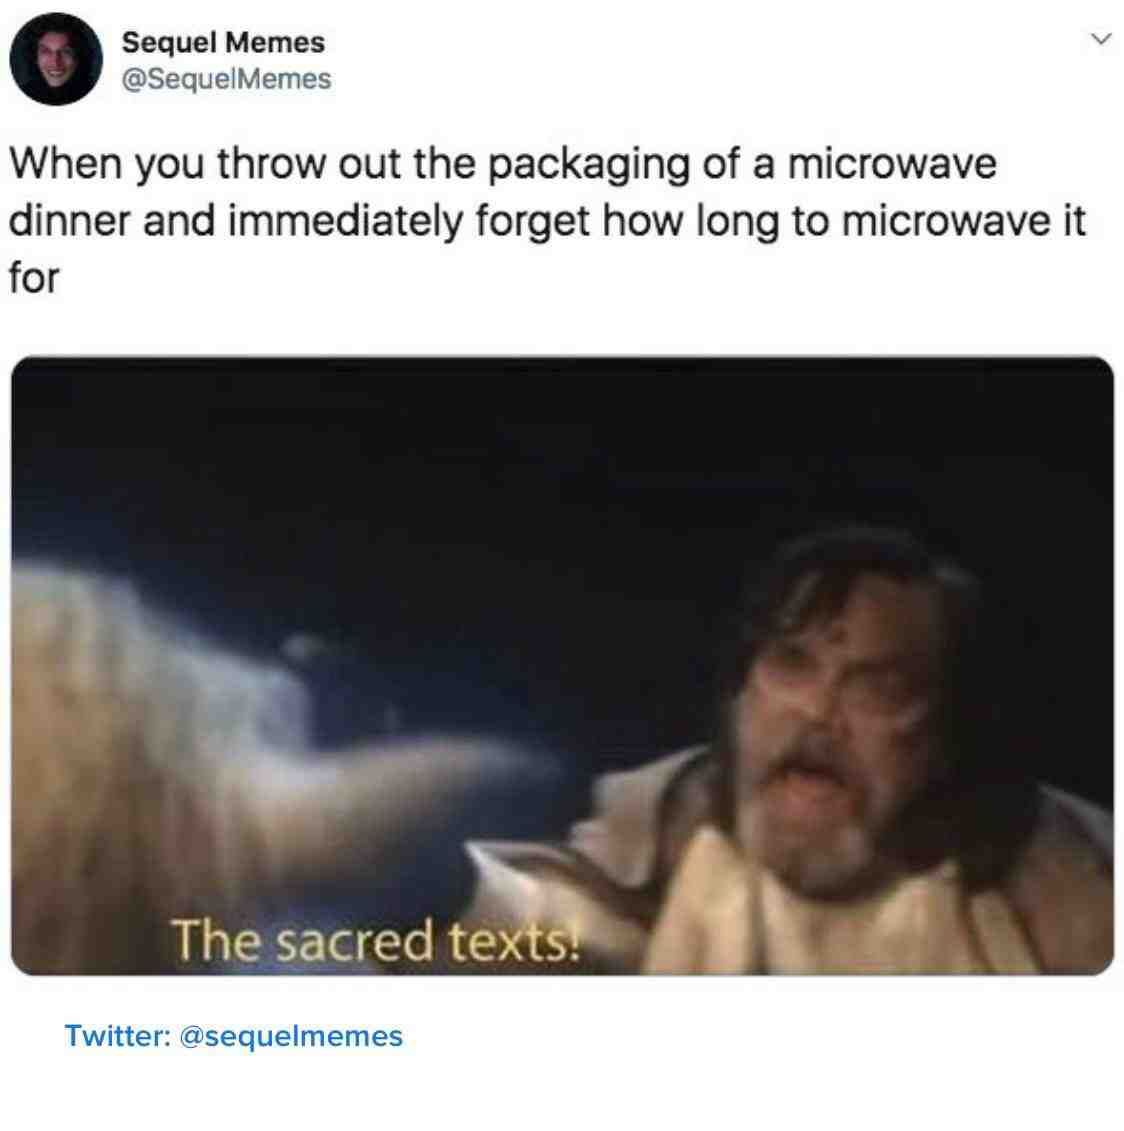 22 Psychopath Memes To Drive You Crazy Star Wars Humor Laughing So Hard Memes